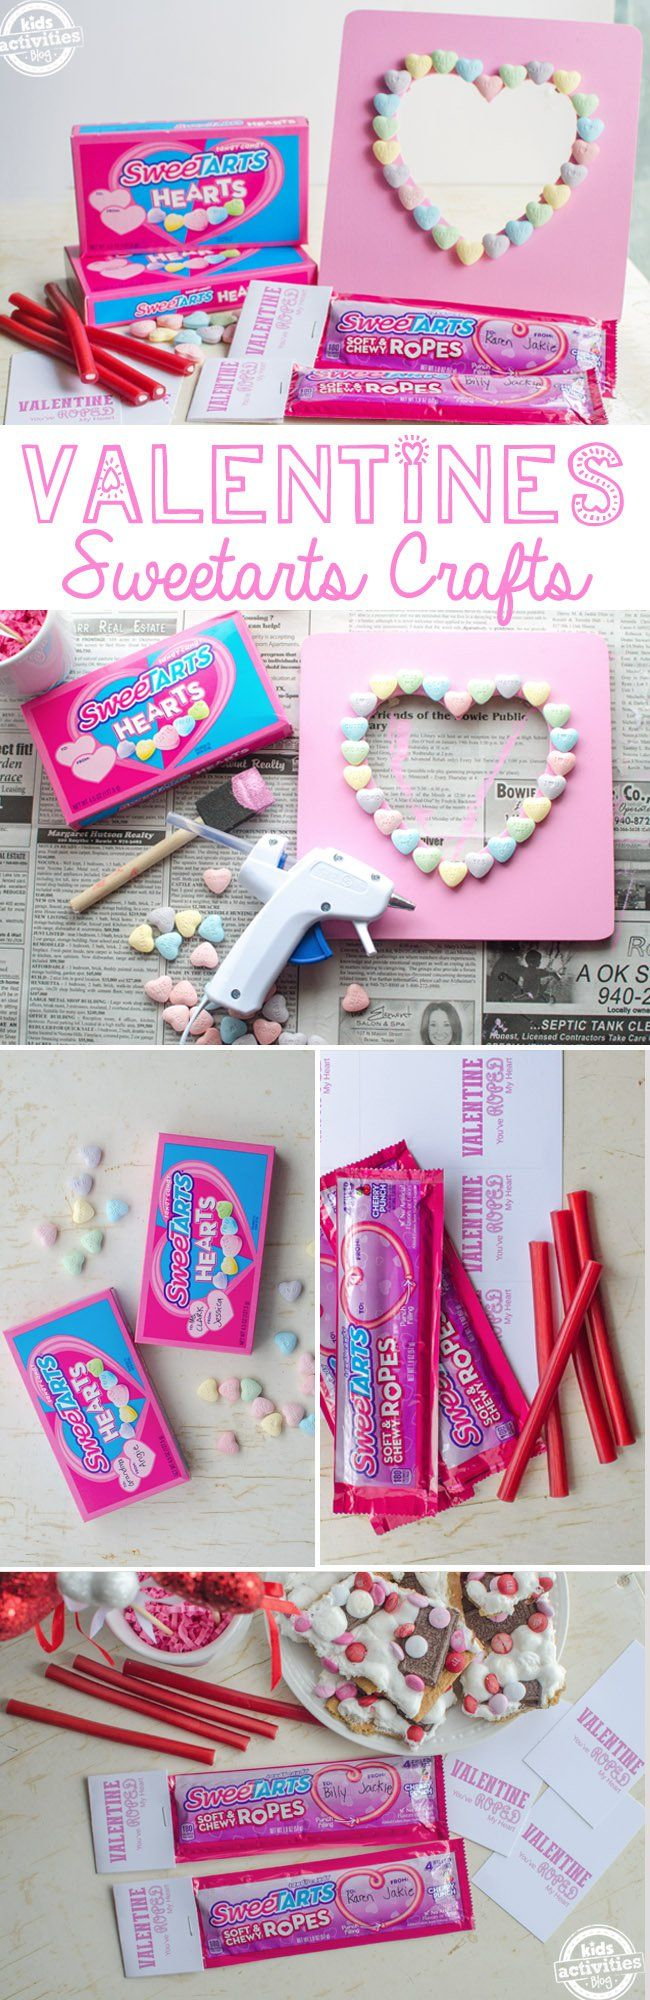 DIY Valentine's Day sweetarts hearts craft Photo project!!!!